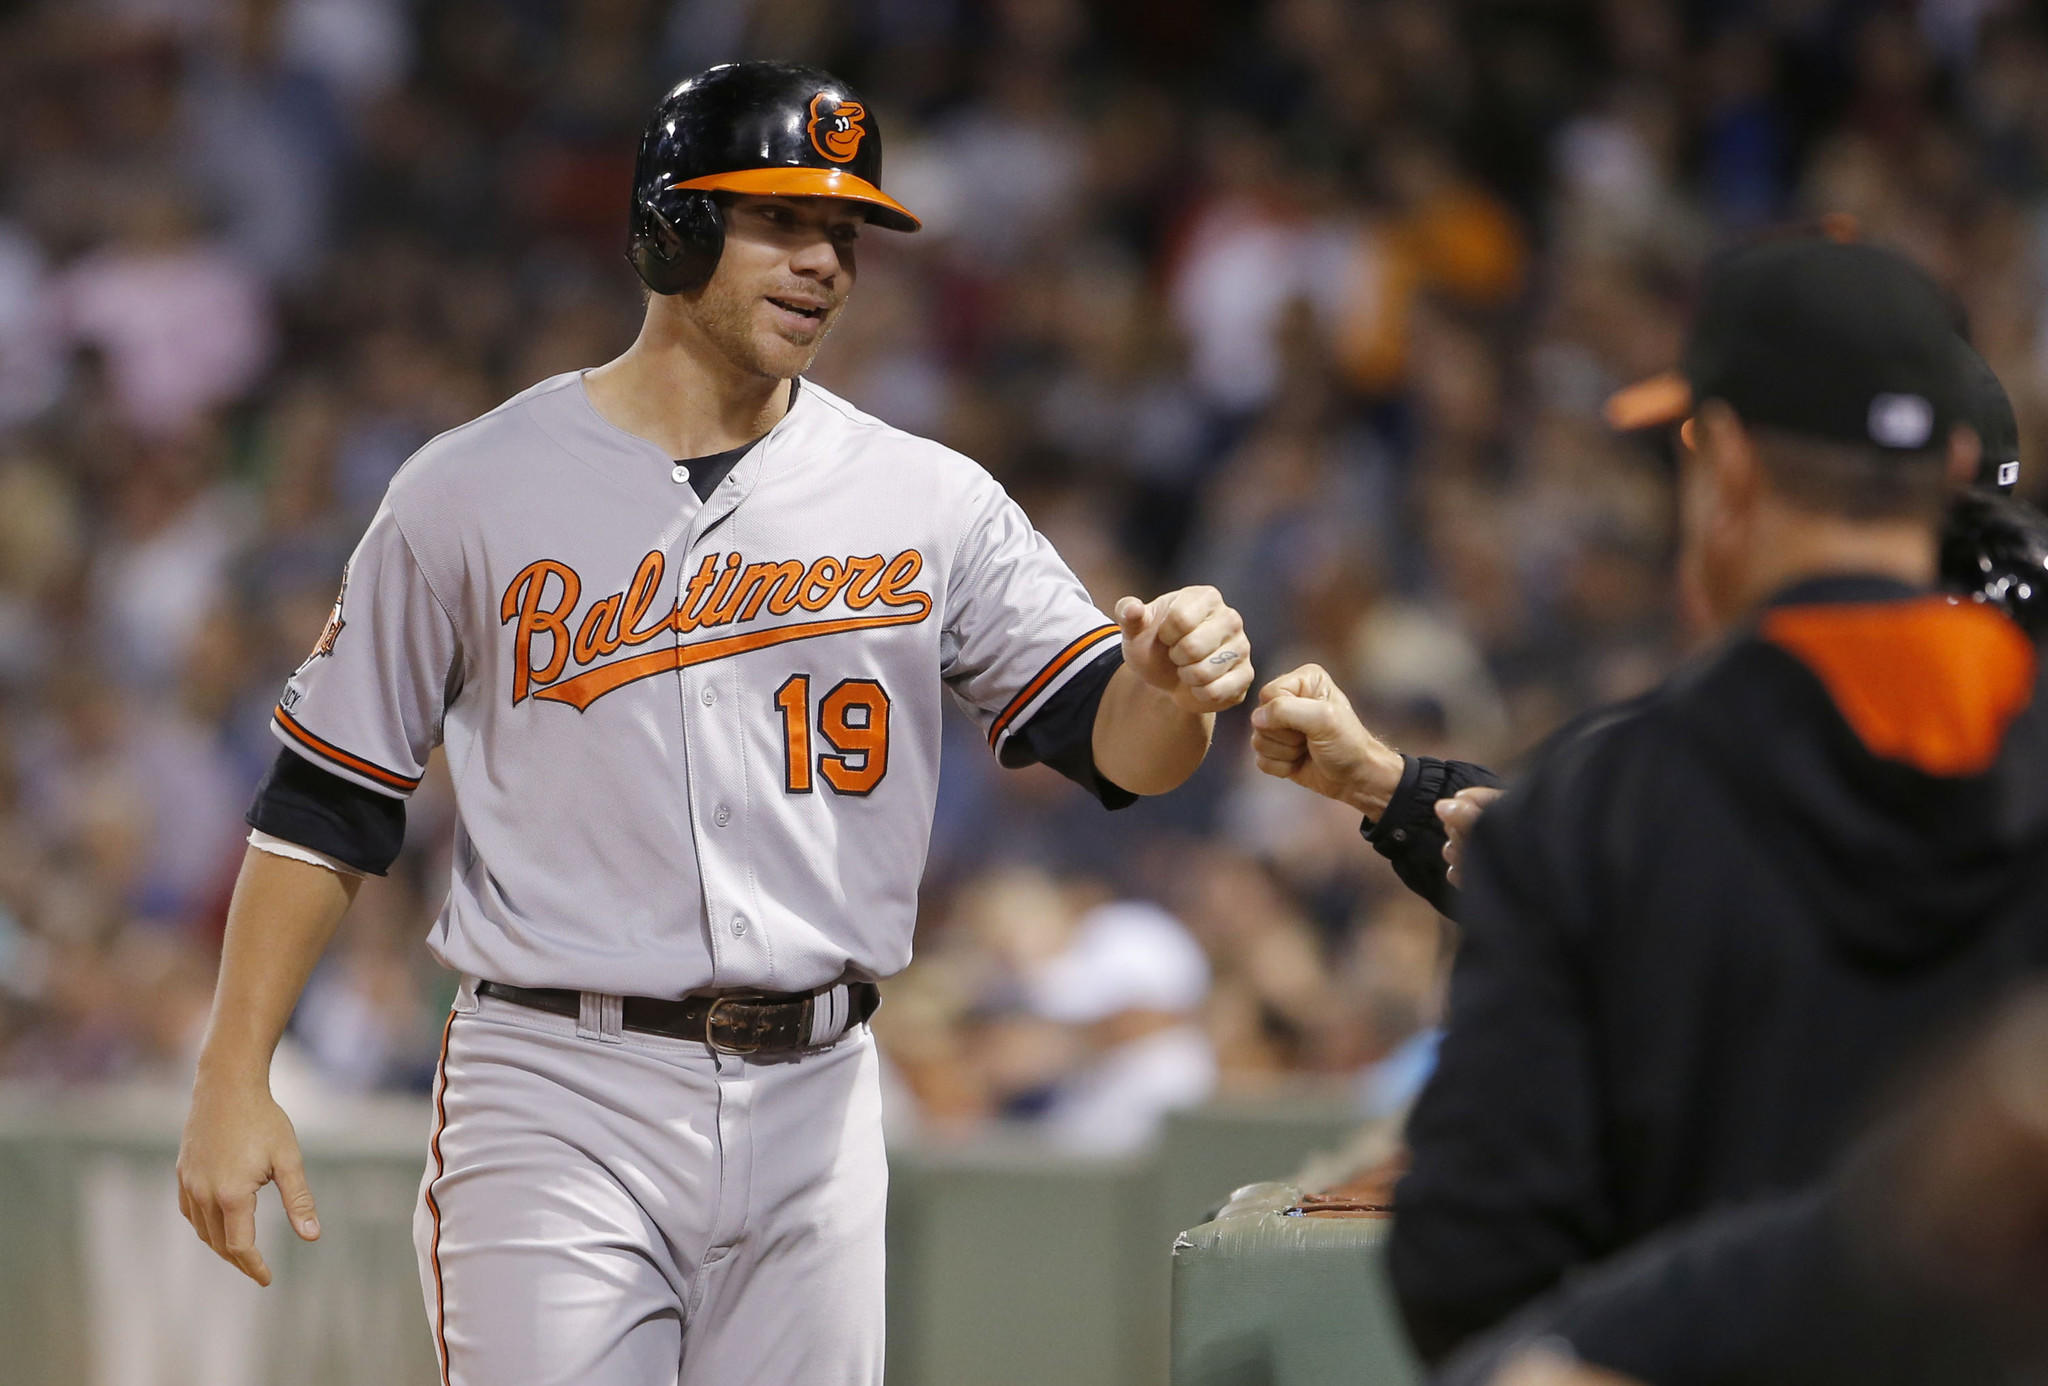 Baltimore Orioles first baseman Chris Davis is congratulated after scoring against the Boston Red Sox.